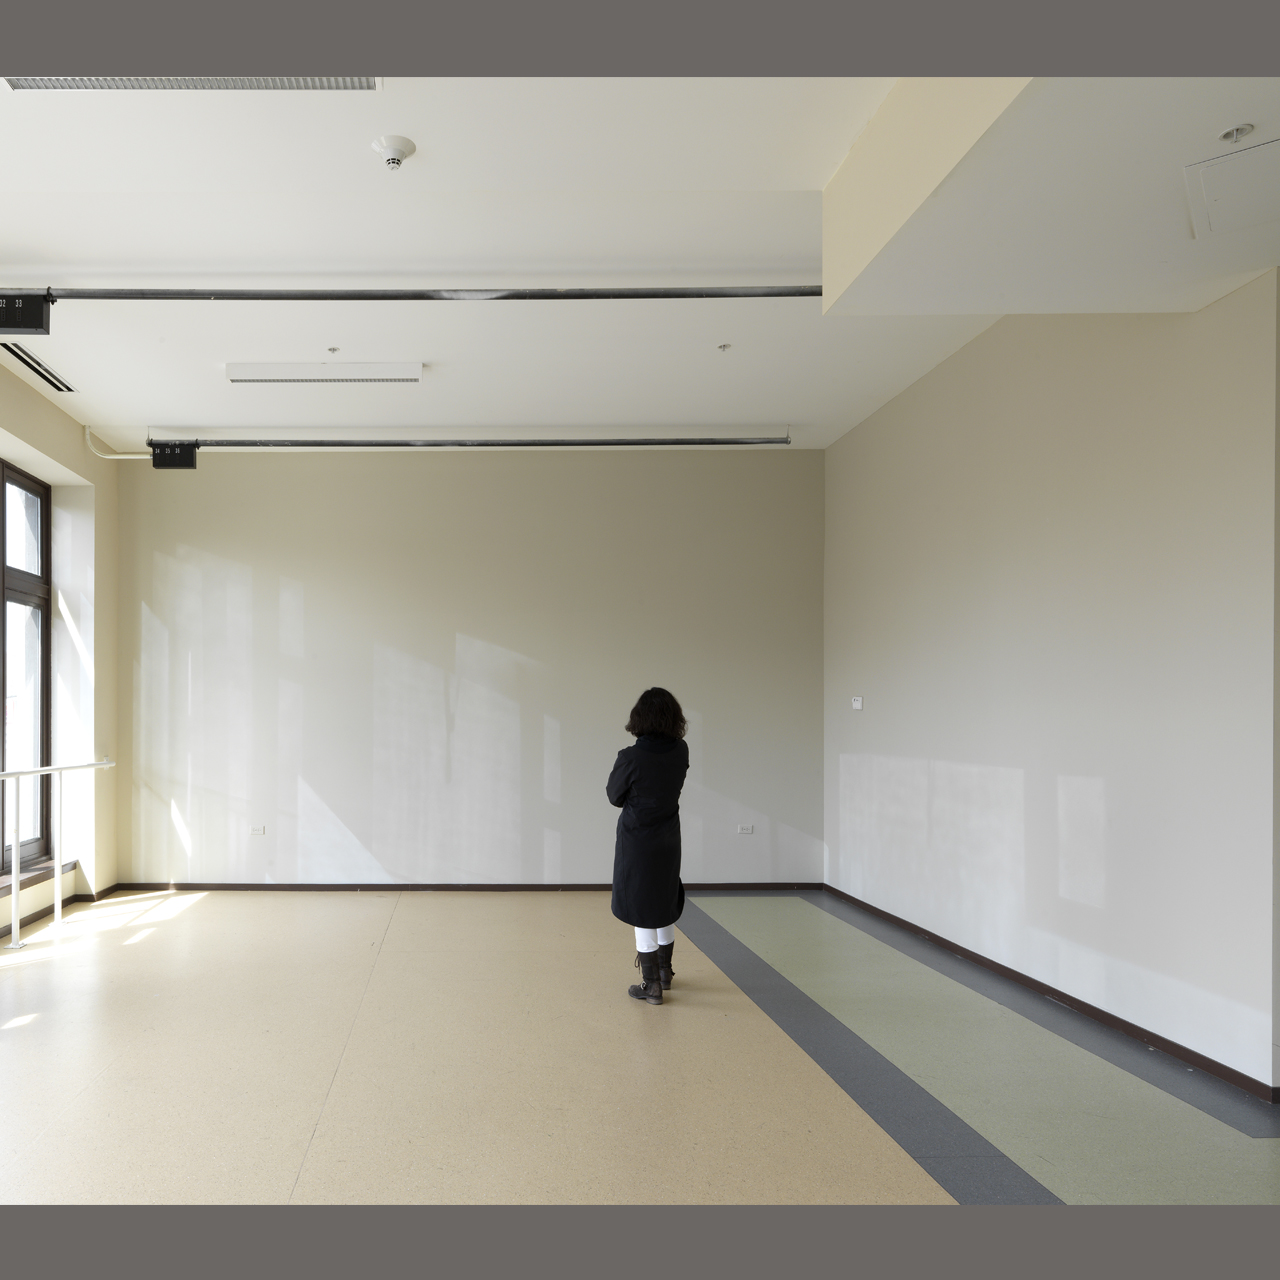 Paola Cabal, Analemma, 2013, interior latex and spray paint on wall, wall height 11 feet 3 inches, wall facing viewer 19 feet 8 inches across